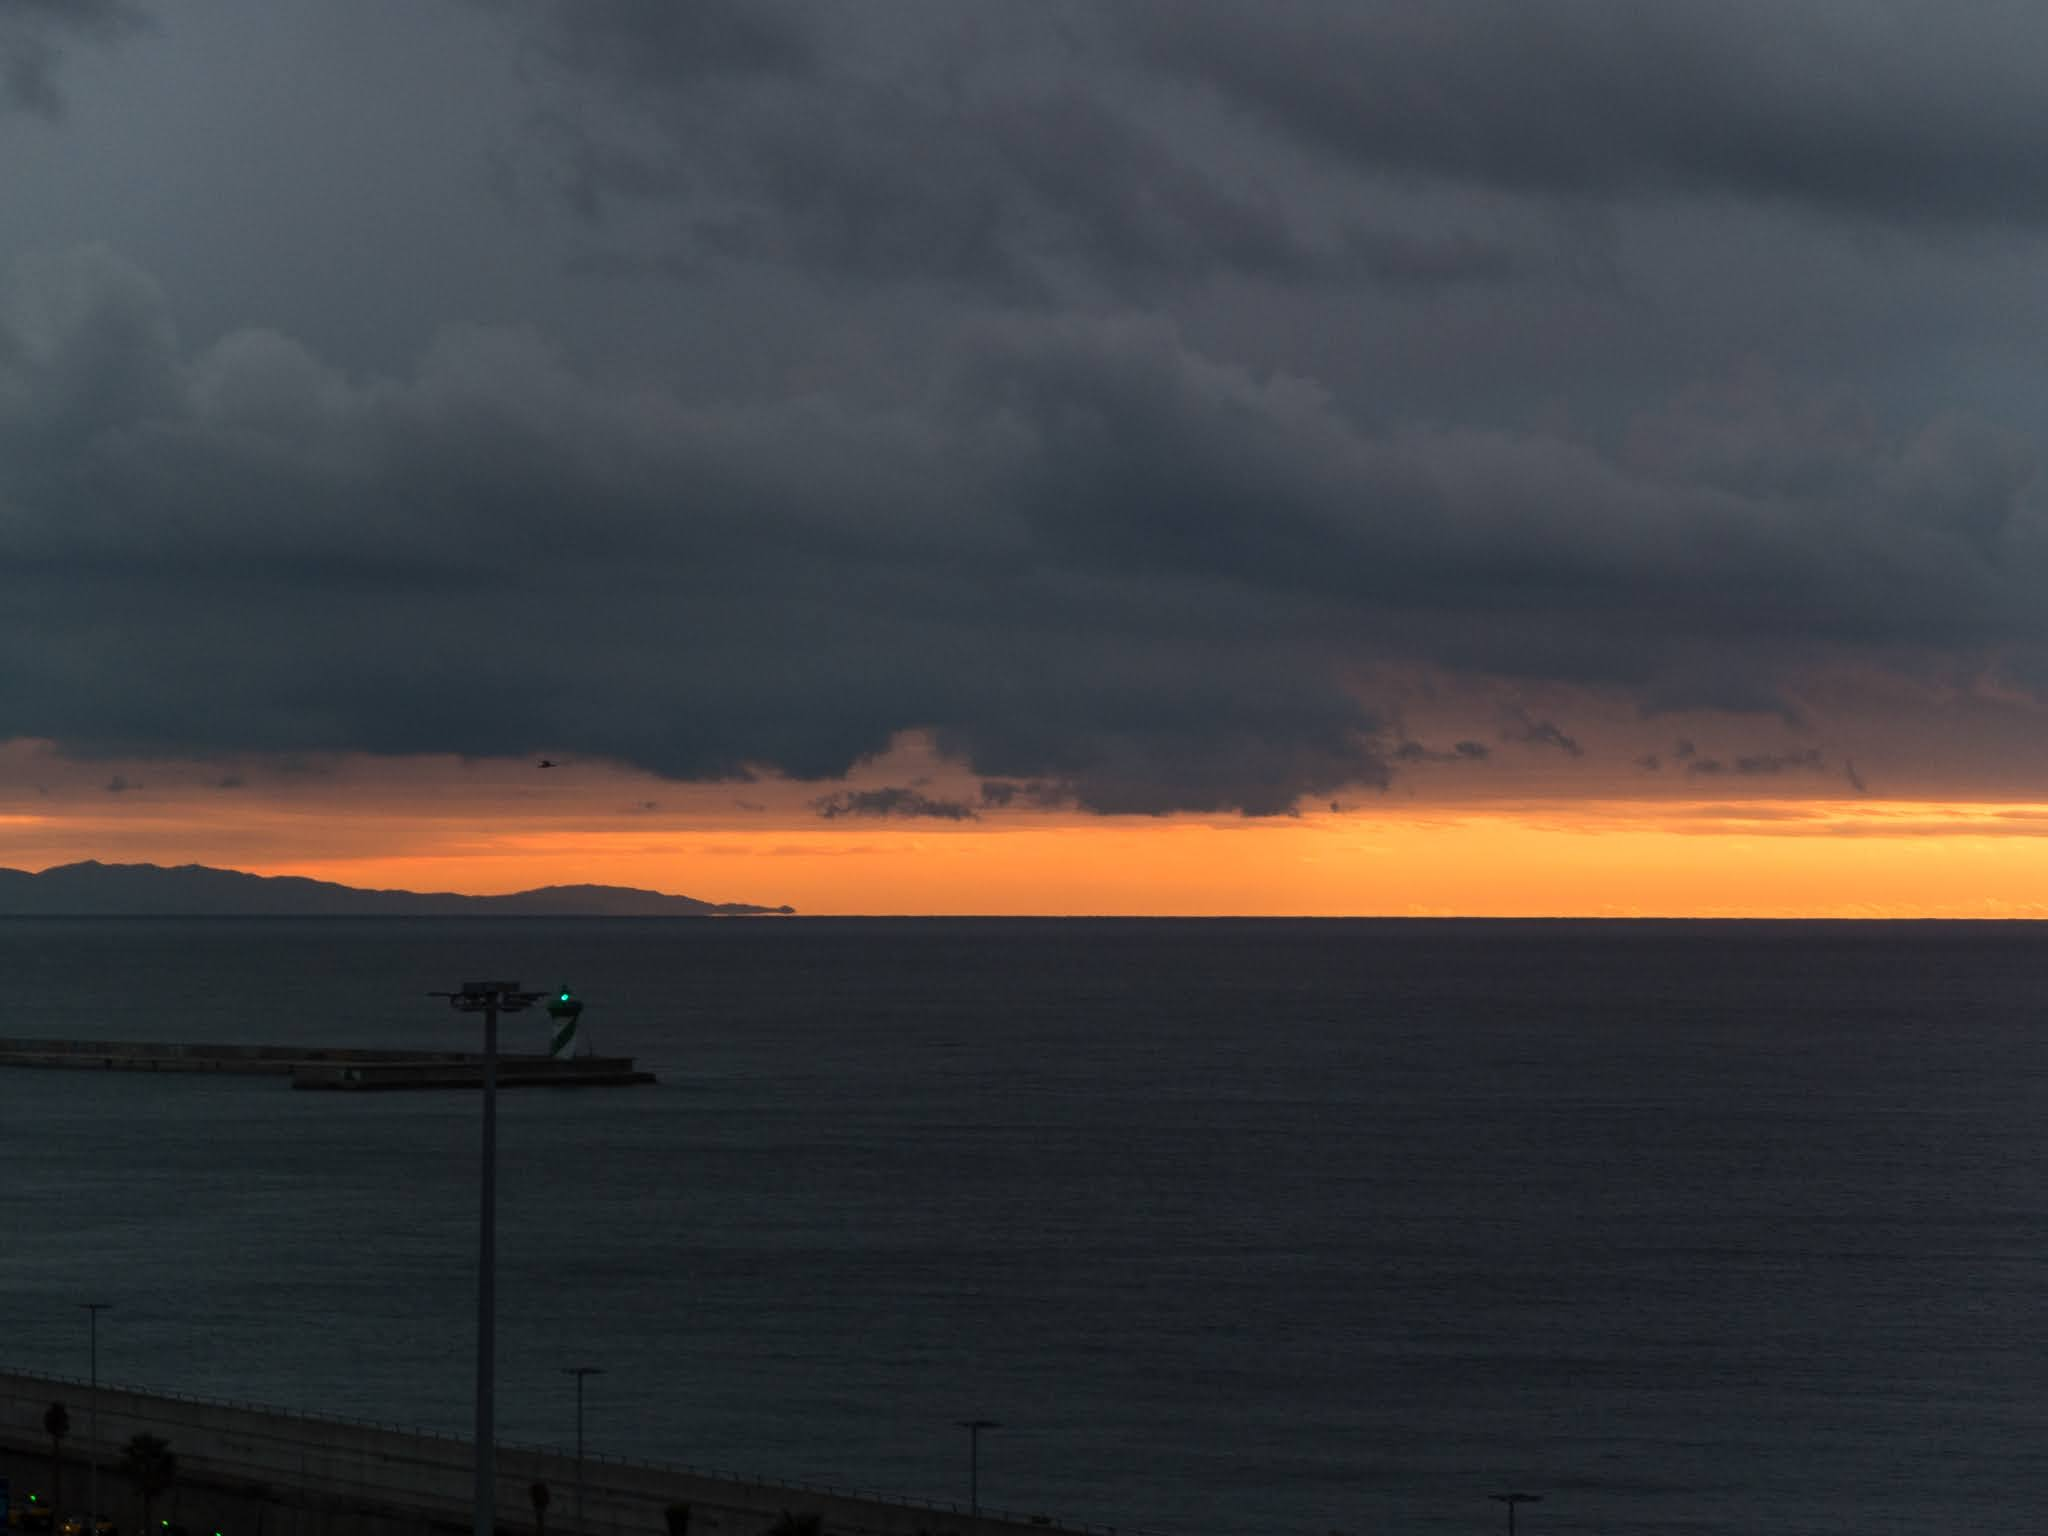 Dark clouds at sunrise in the port of Barcelona looking out towards the sea.